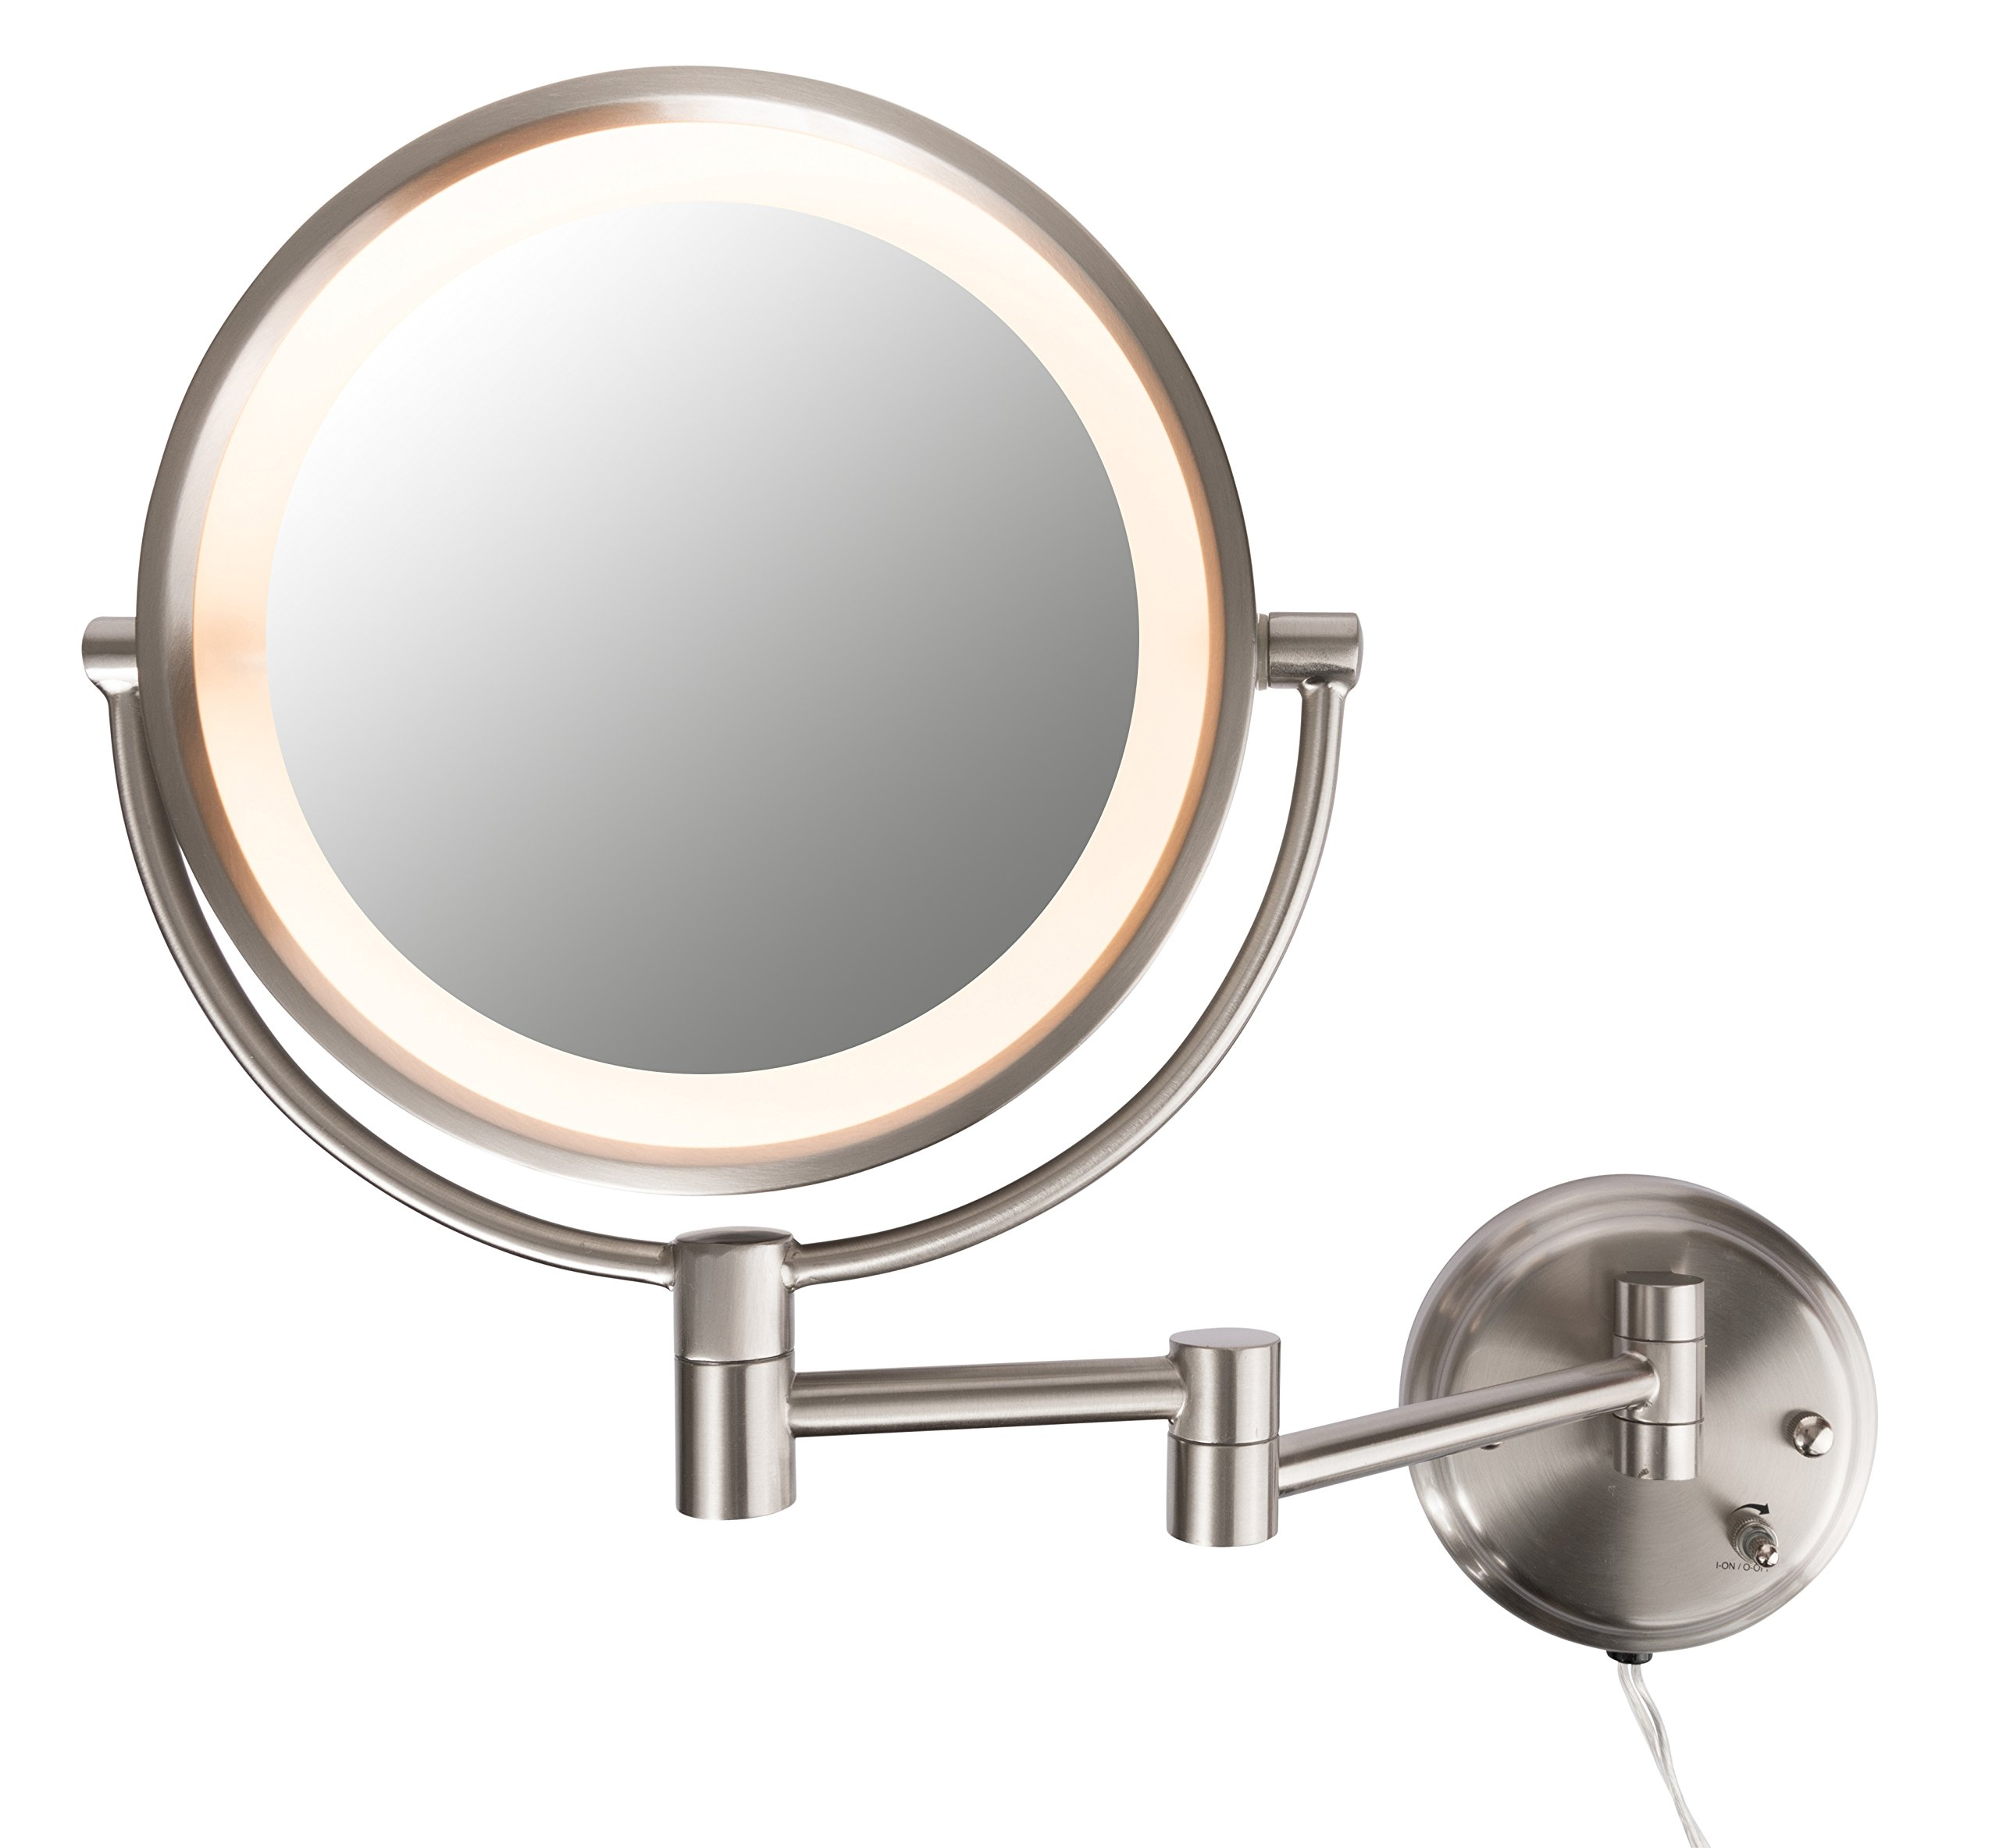 Conair BE6BX Double Sided Lighted 8X Magnification Fog-Free Wall Mount Mirror by Conair